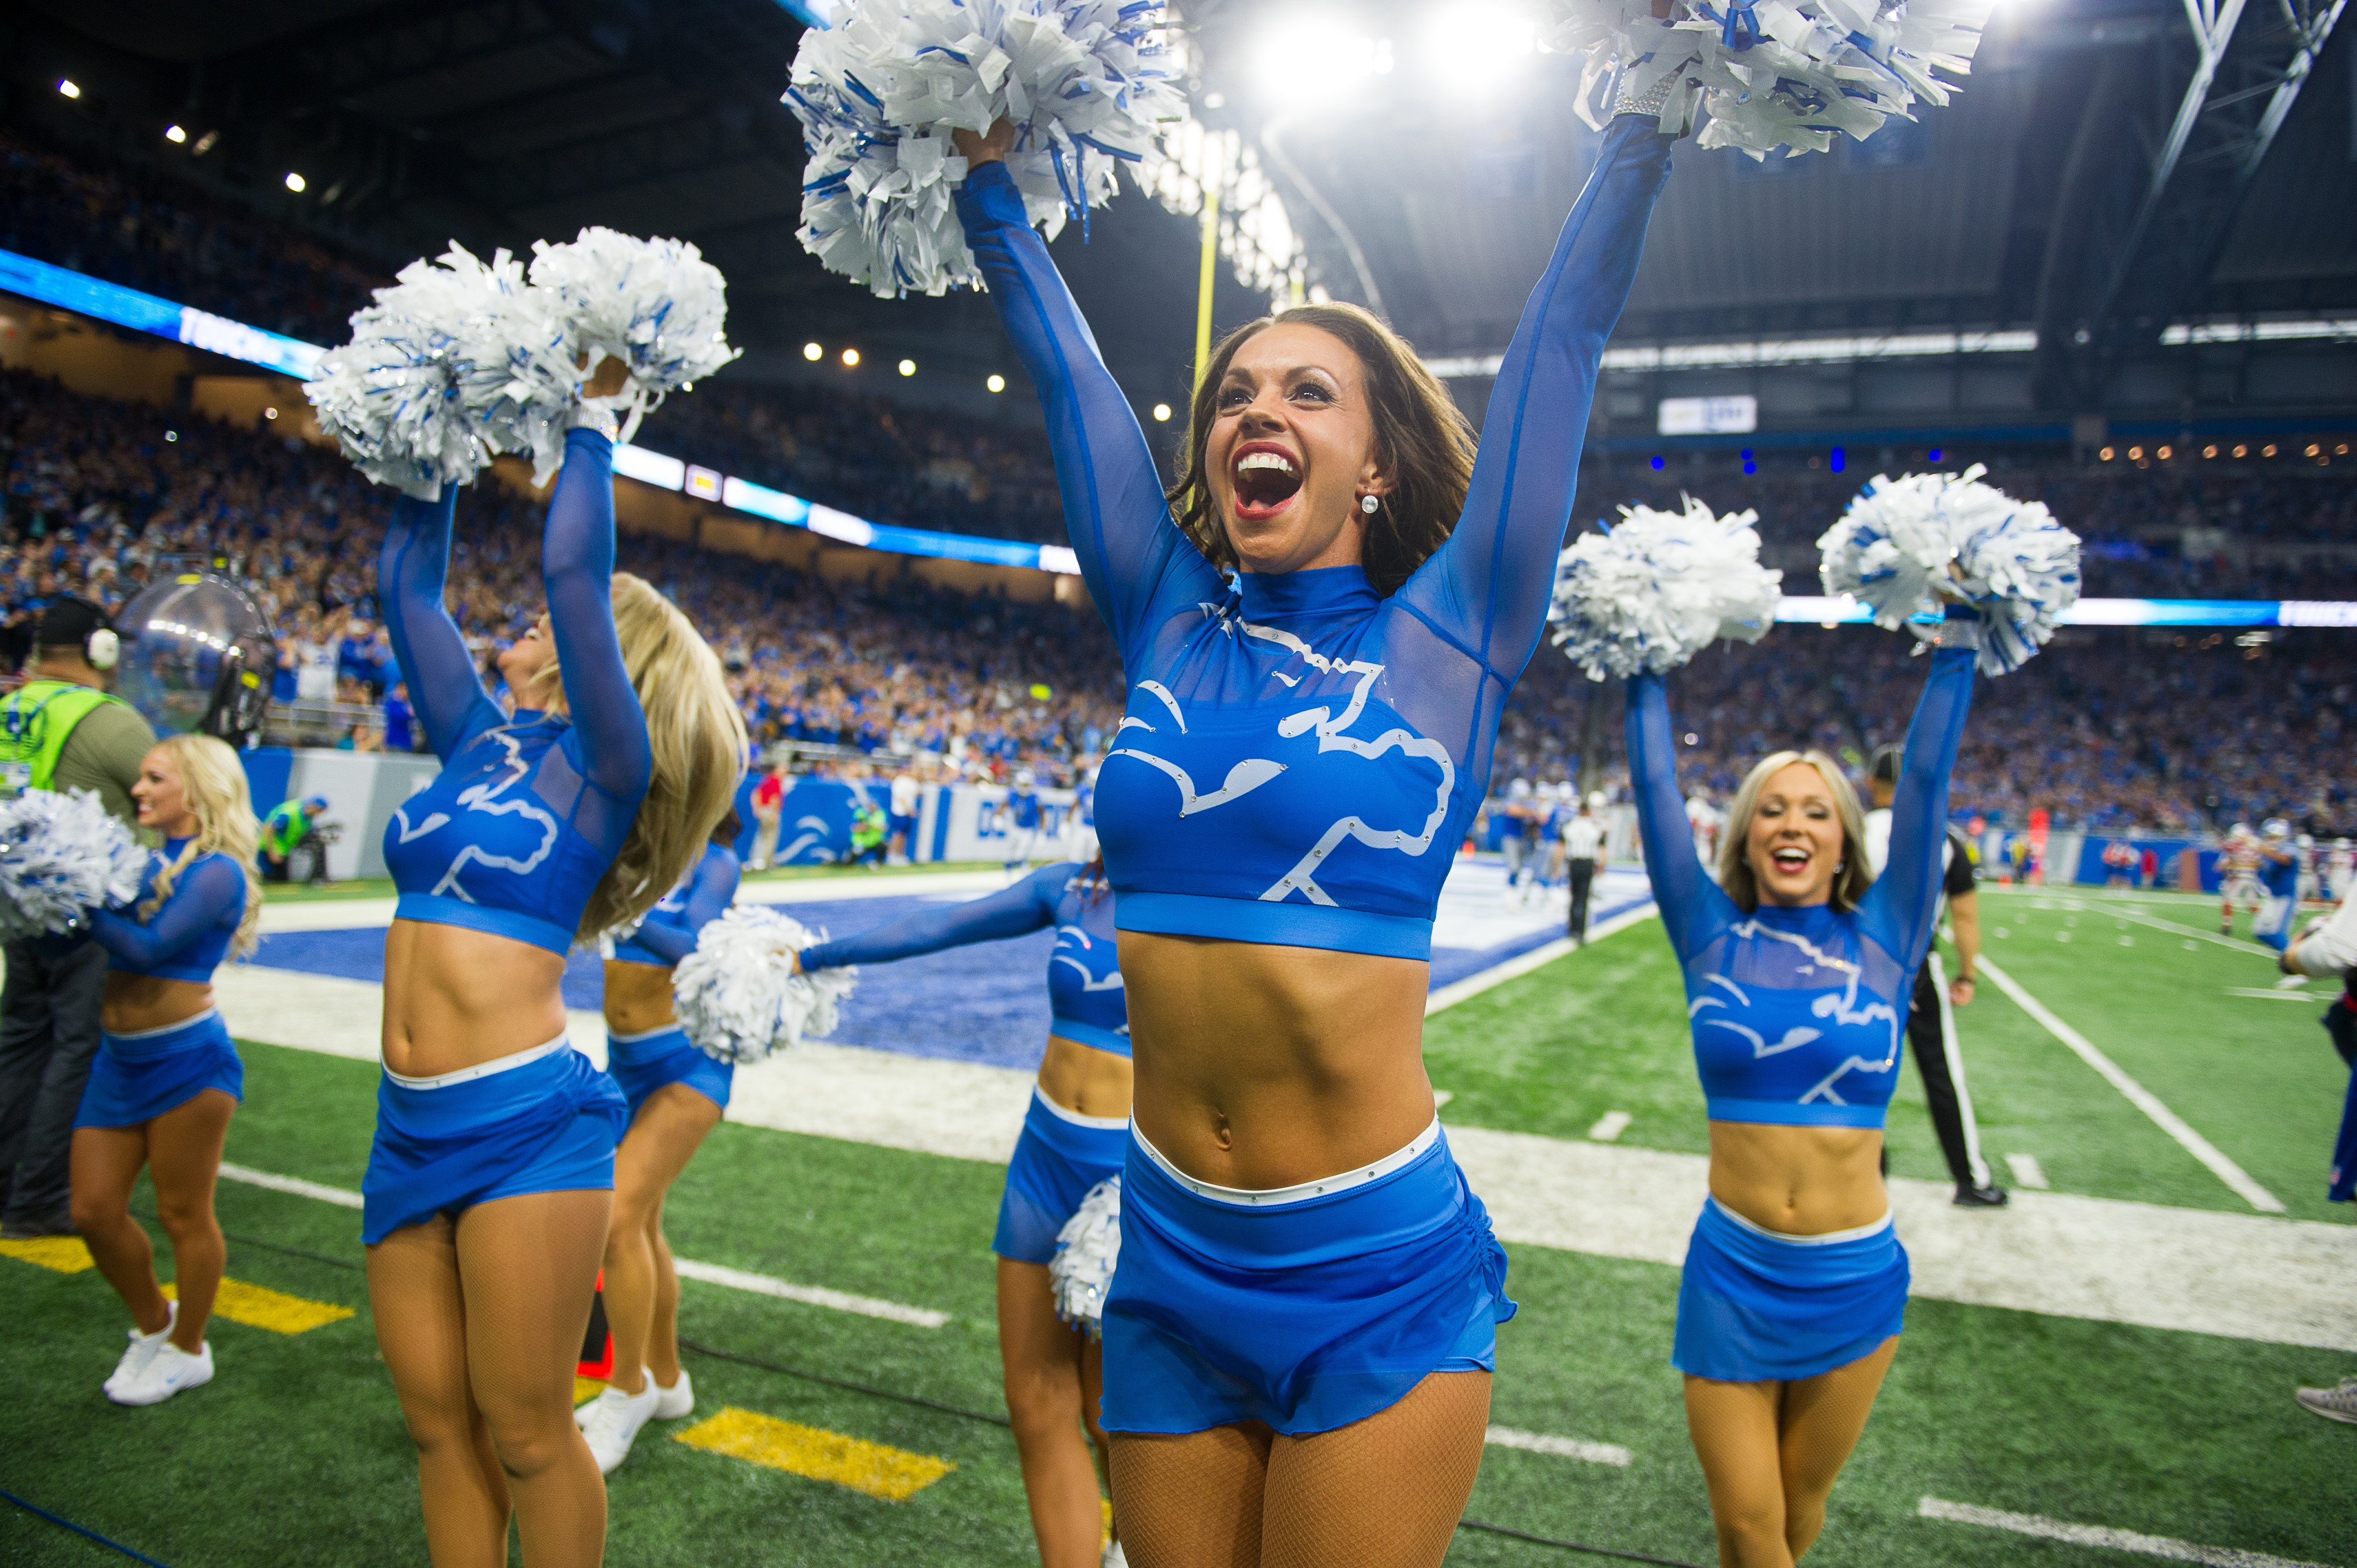 Detroit Lions Cheerleaders Blue Uniforms